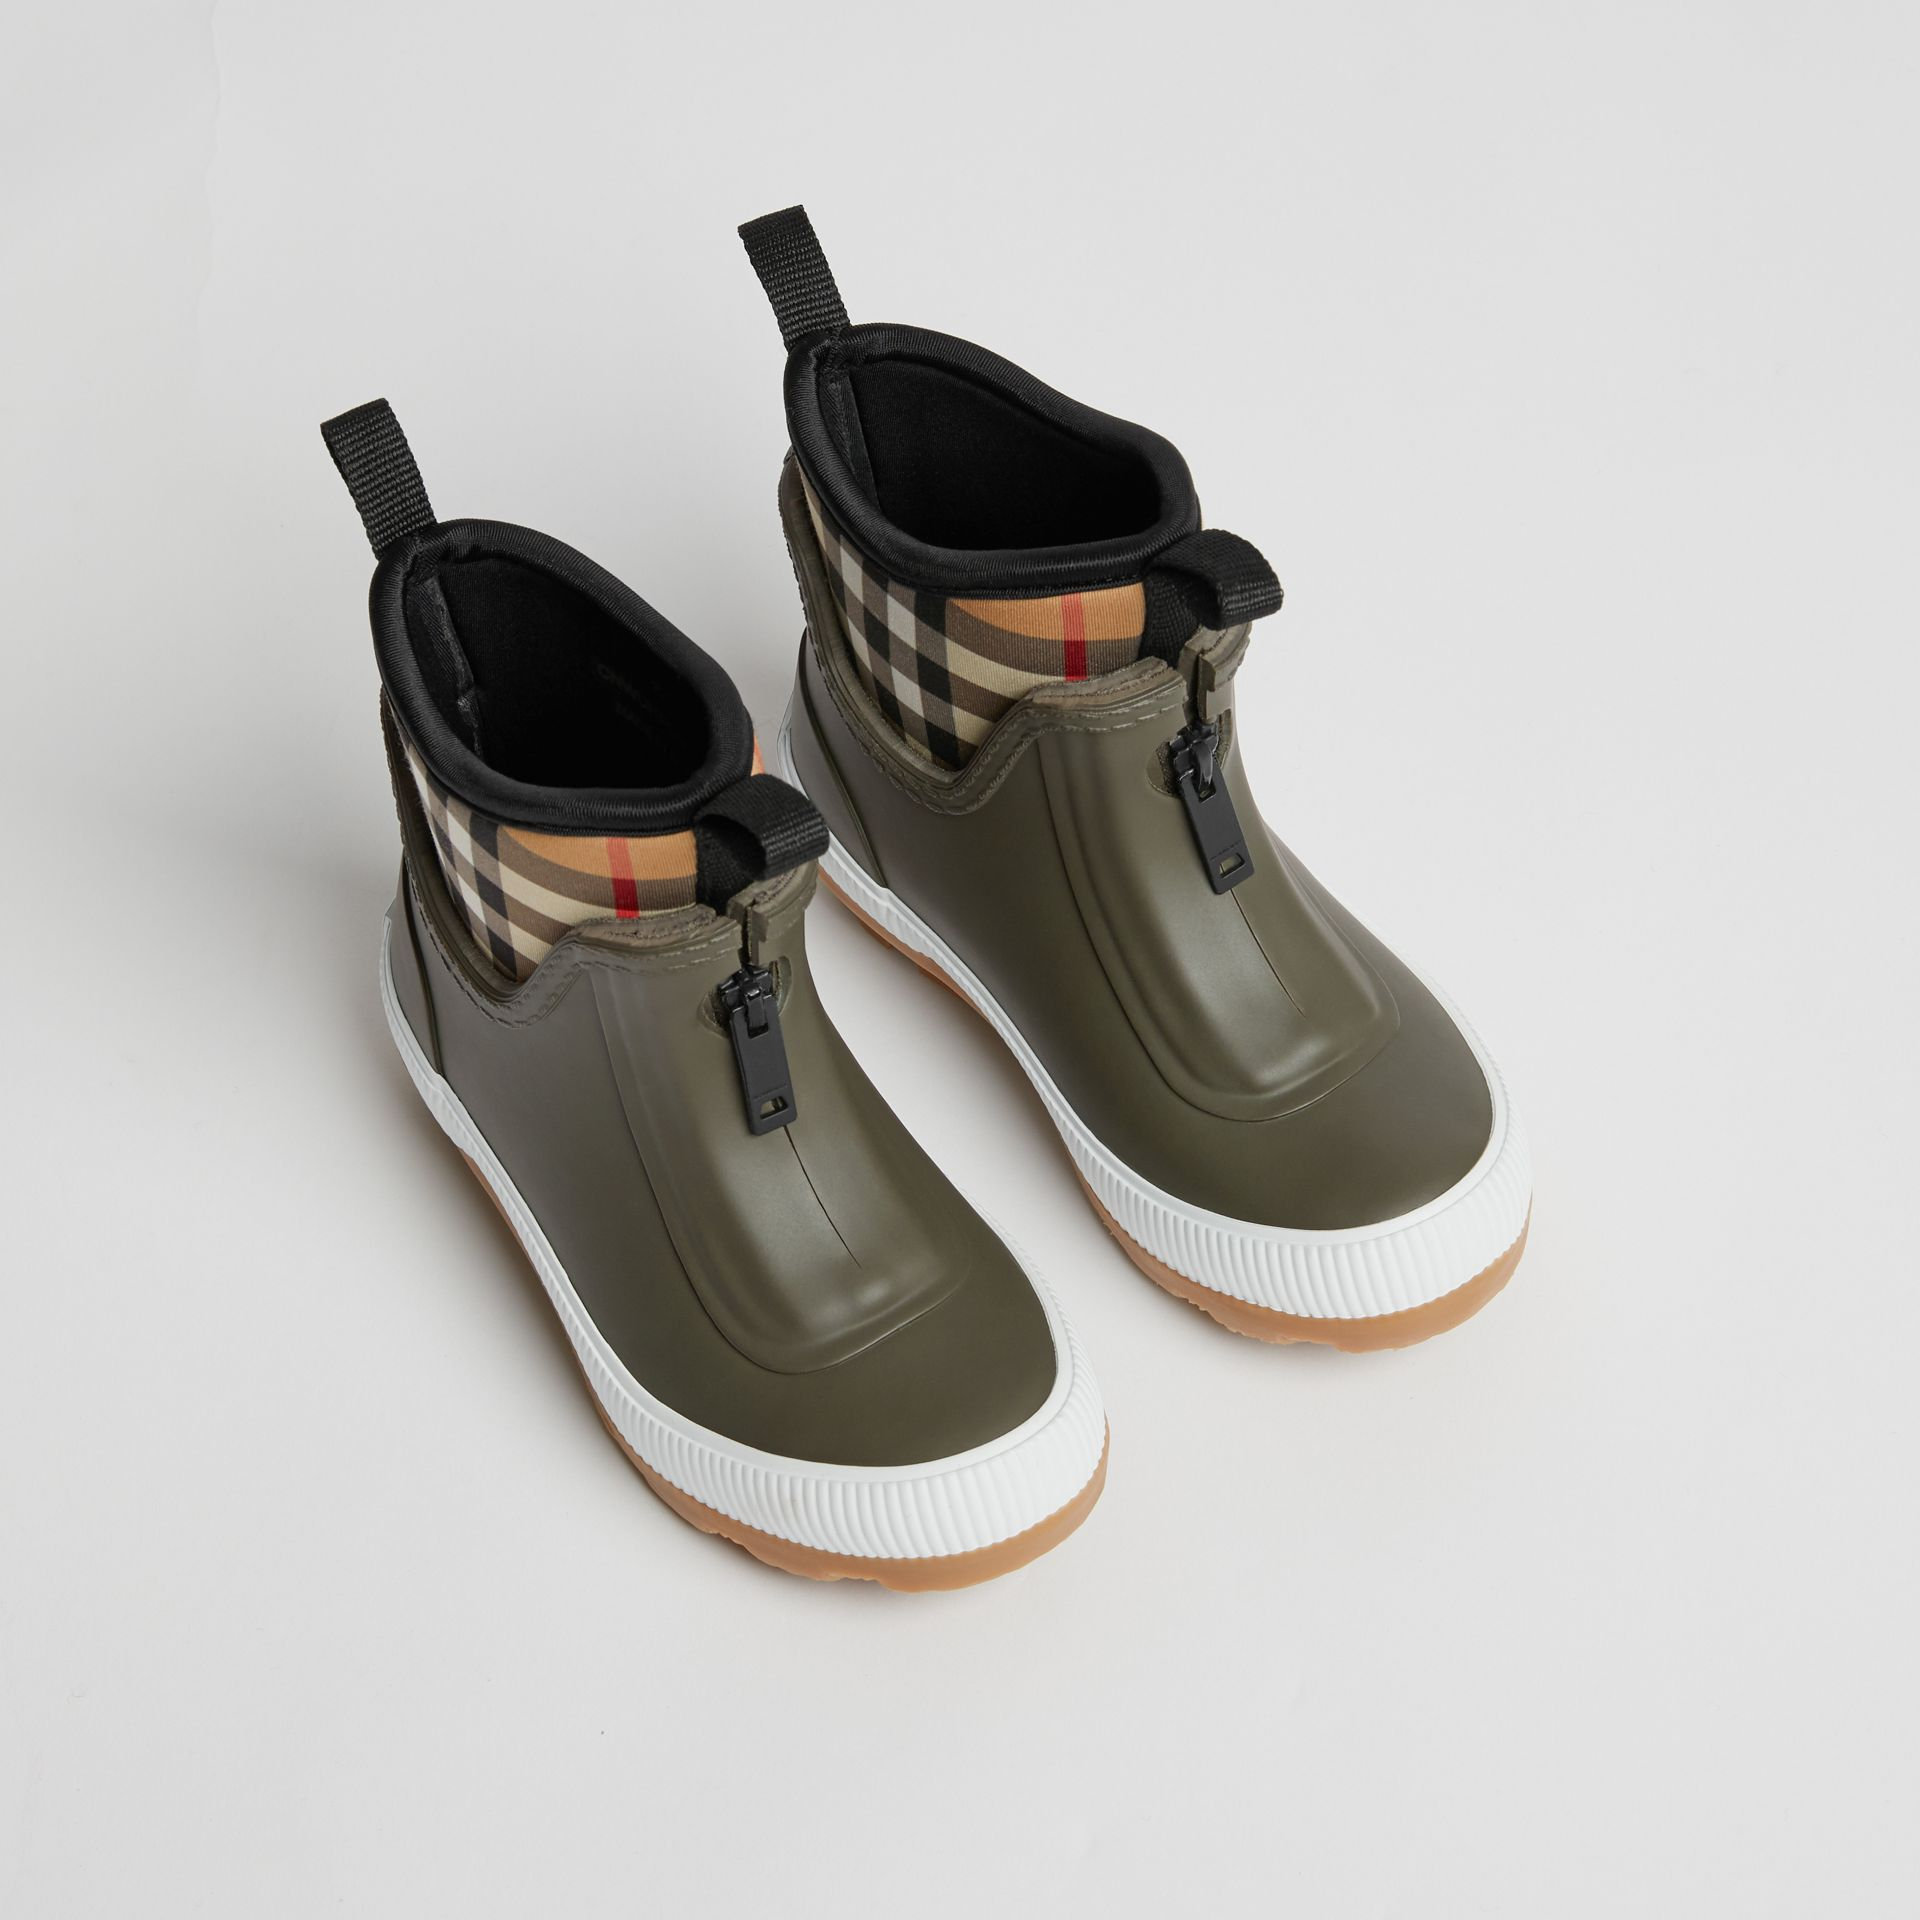 Vintage Check Neoprene and Rubber Rain Boots in Military Green | Burberry - gallery image 0